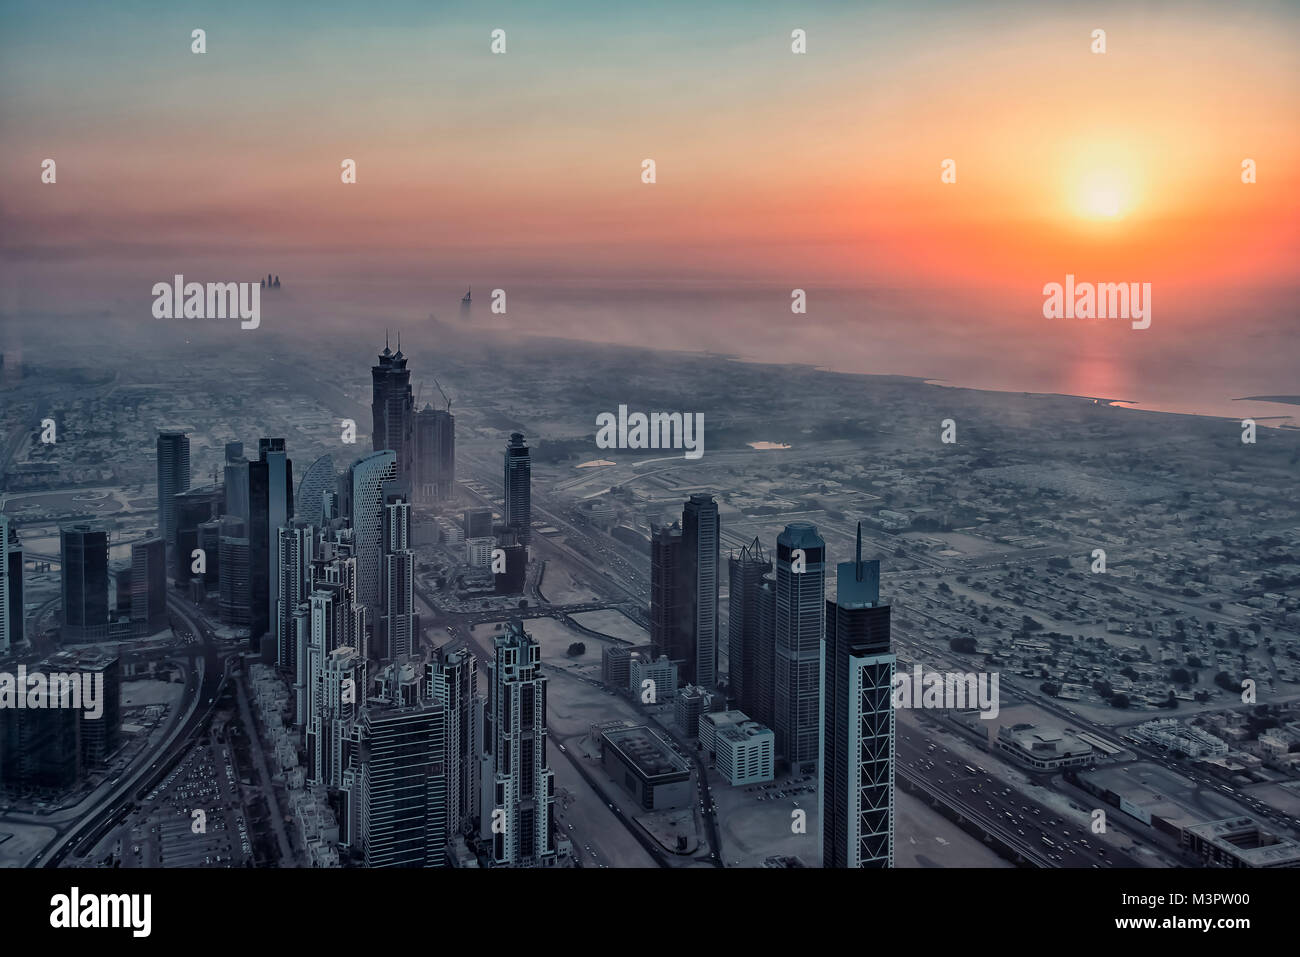 Dubai city at sunset, UAE - Stock Image